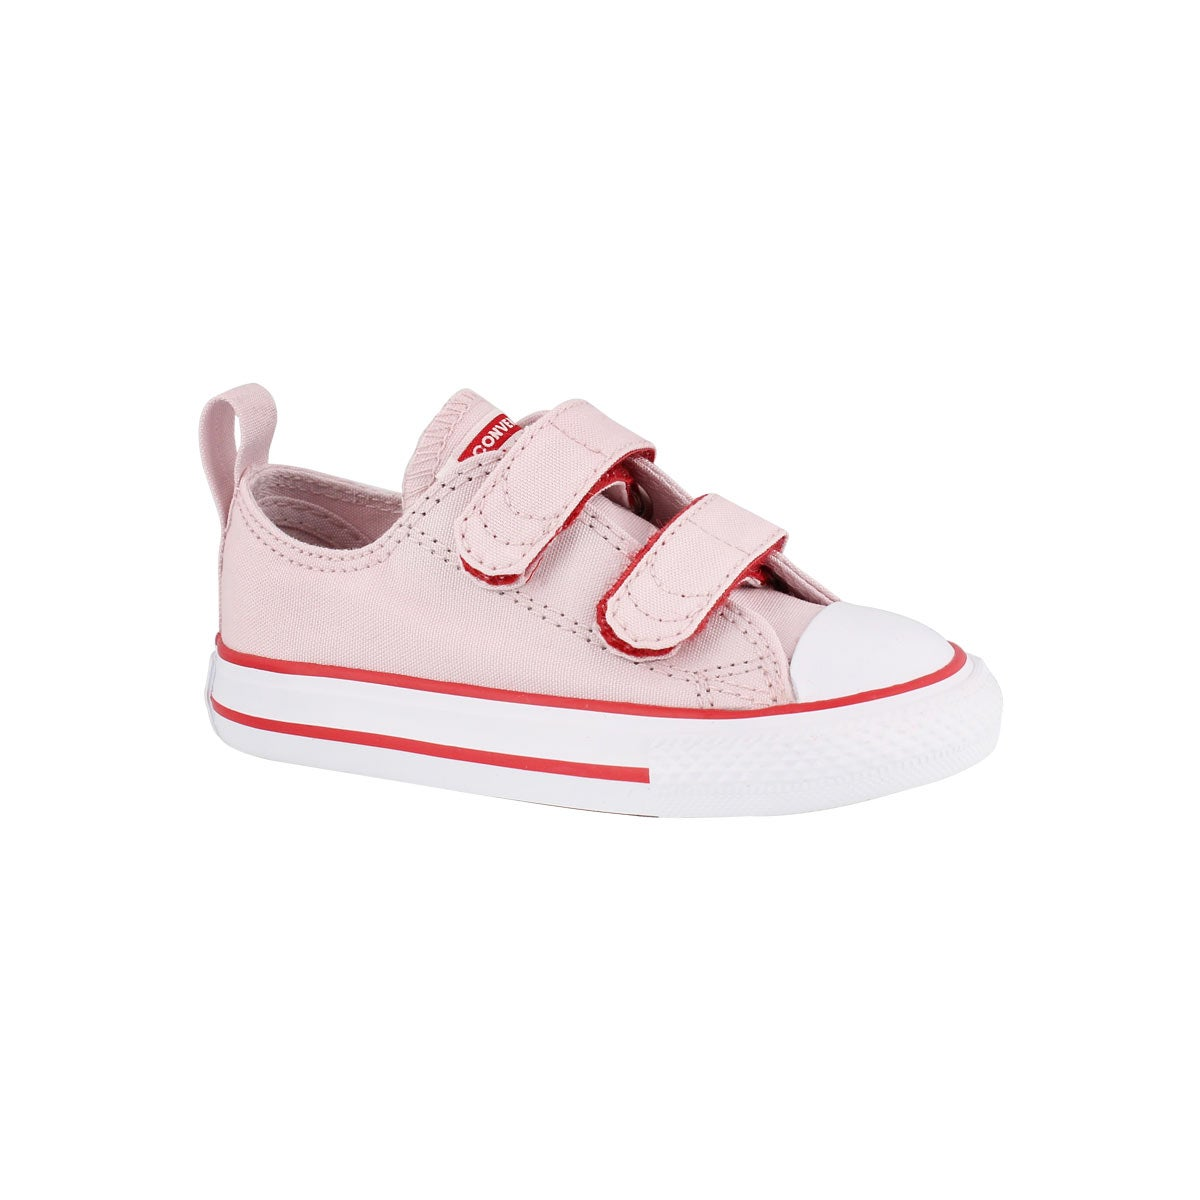 Infants' CT ALL STAR 2V rose/red/wht sneakers